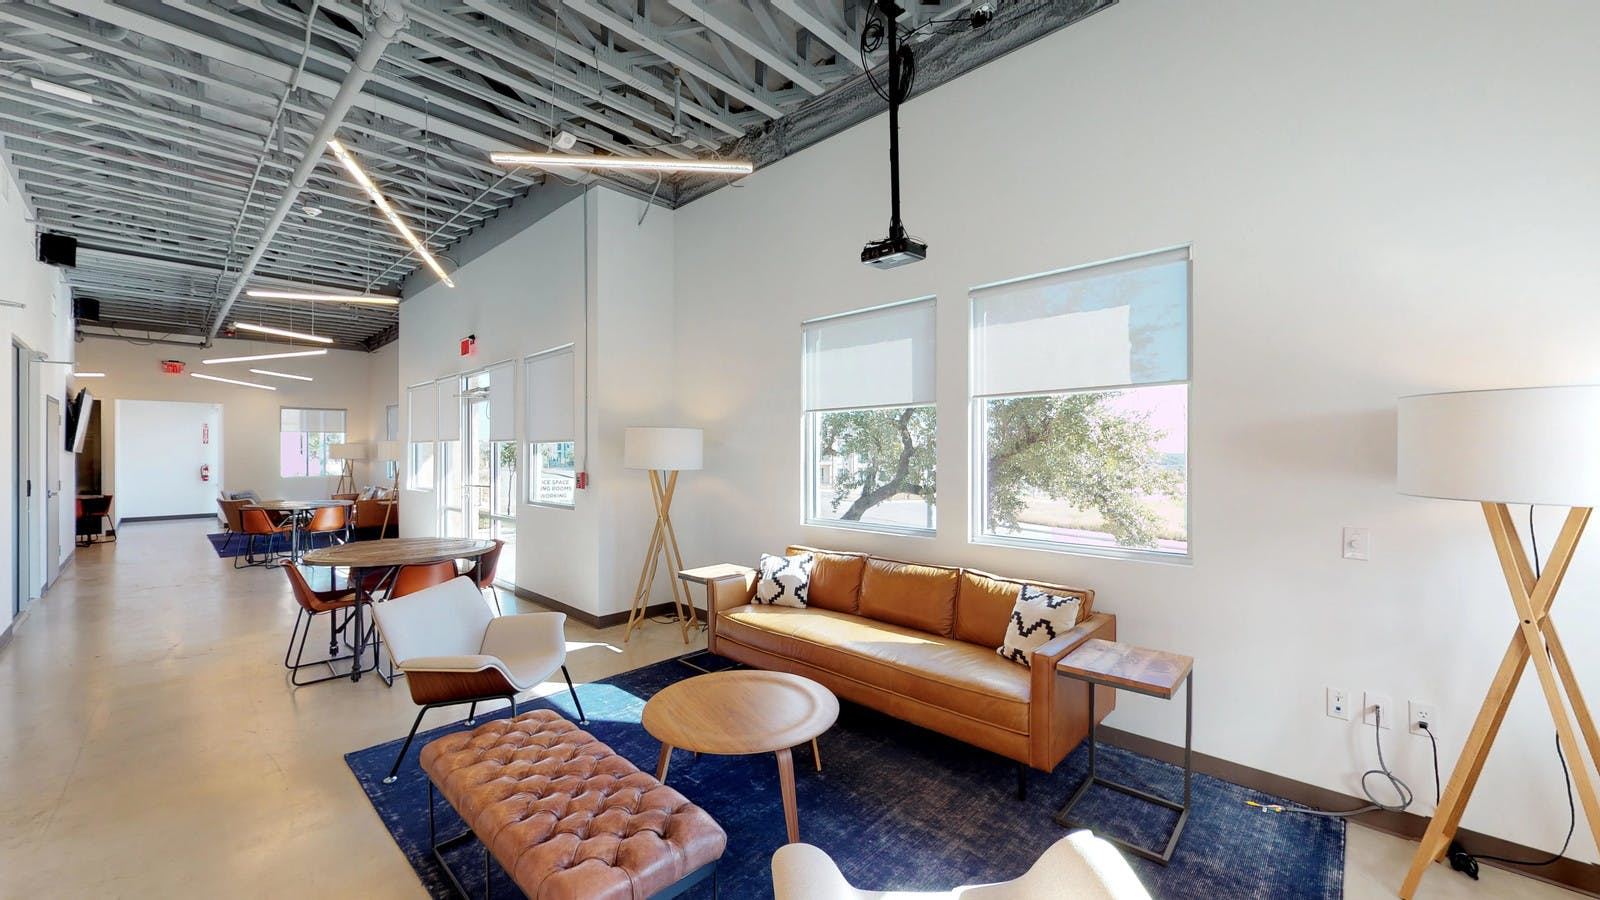 Comfortable and stylish open coworking space with leather couches and benches, cozy chairs, and modern lighting fixtures